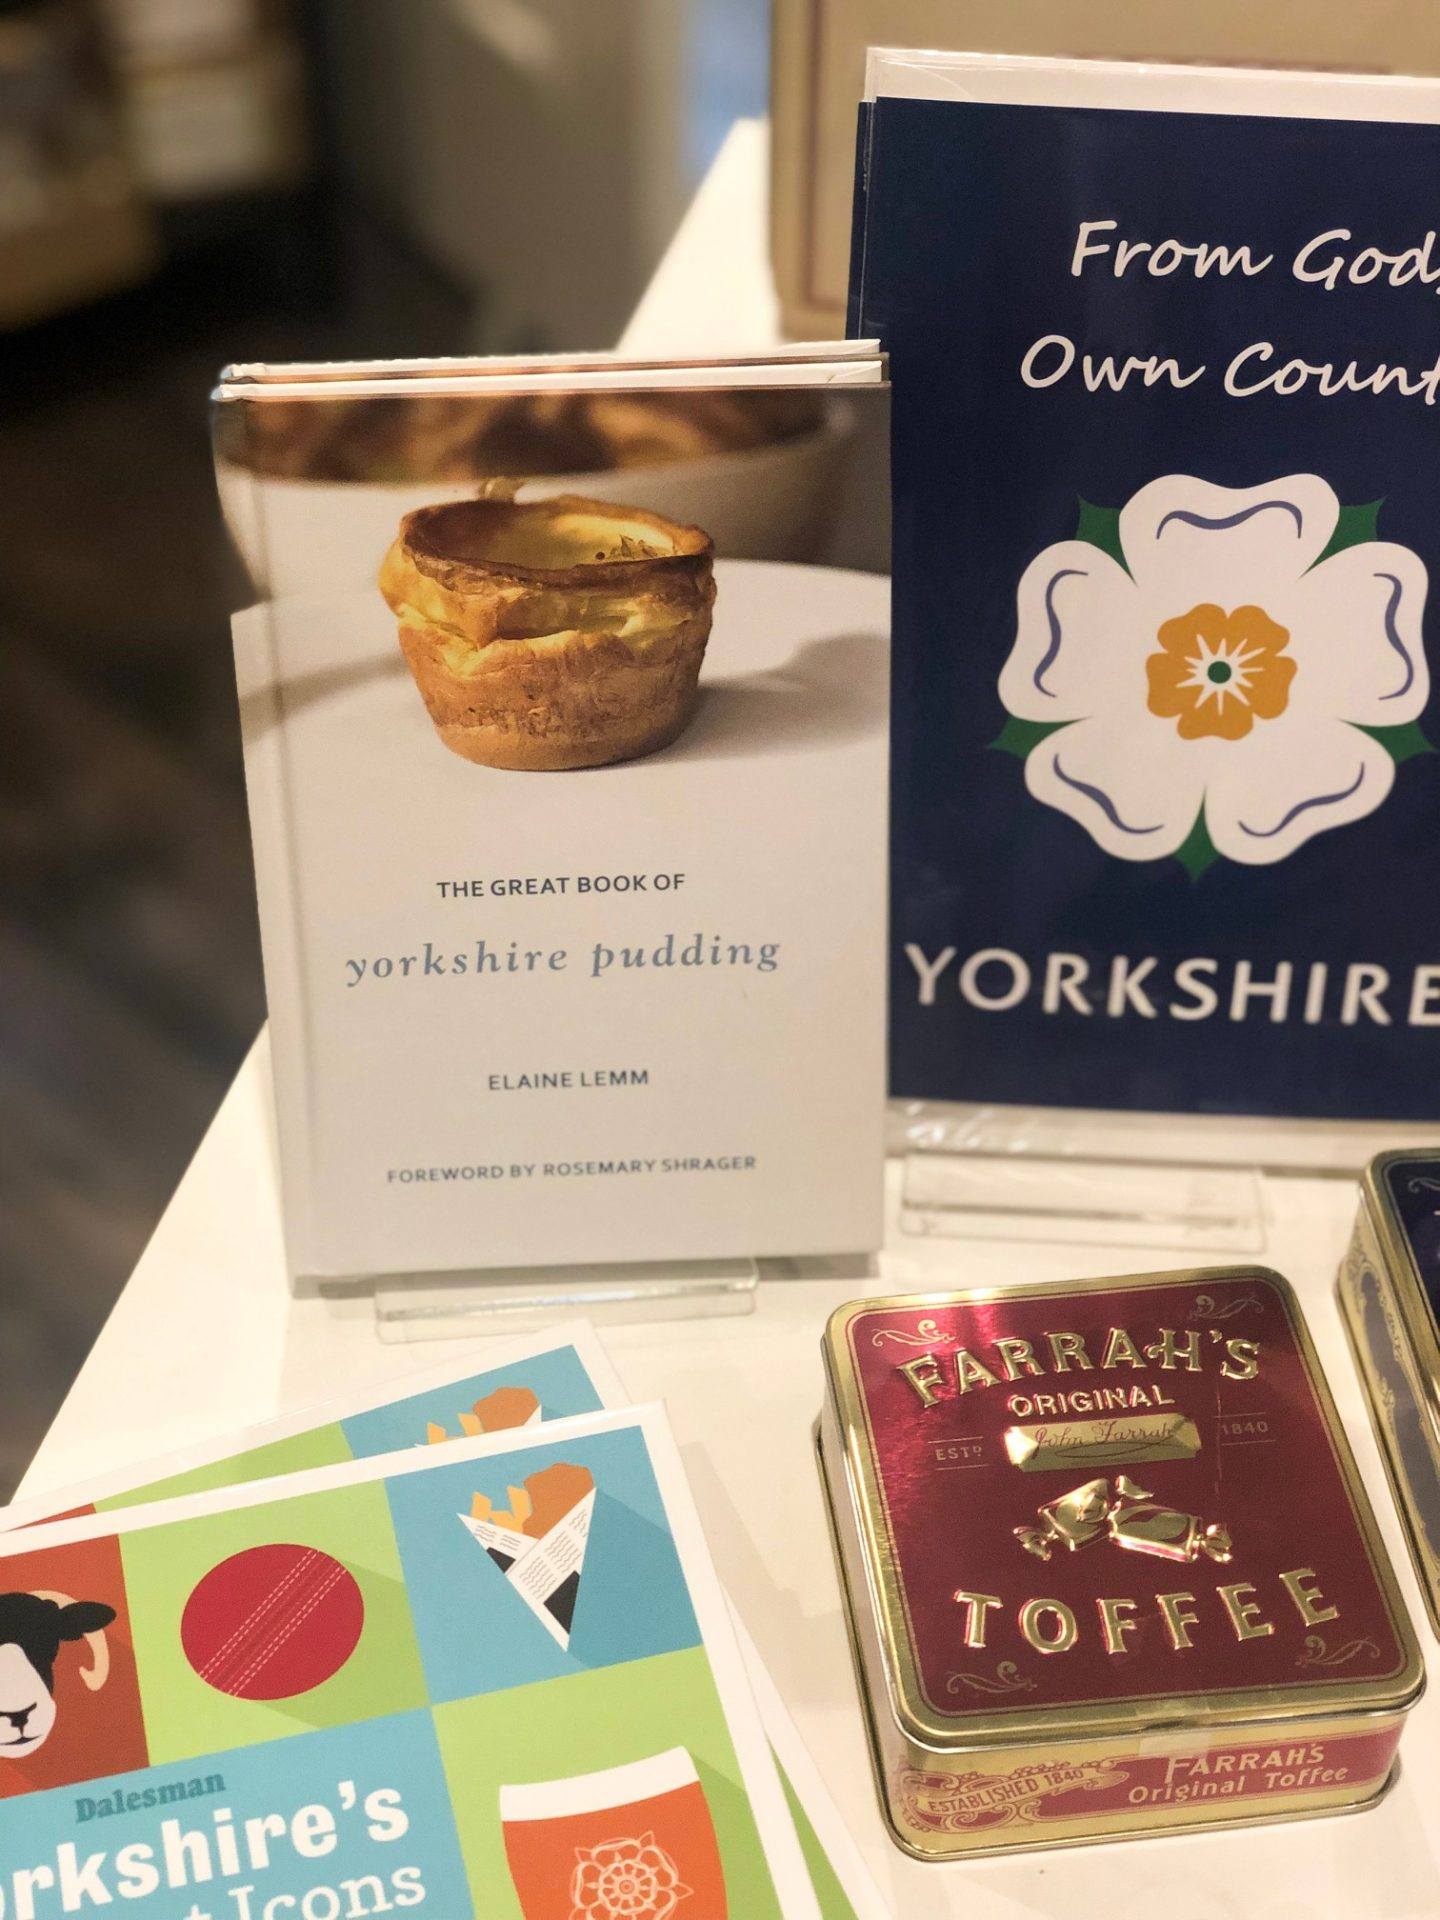 book about yorkshire pudding  at independent business in Leeds corn exchange